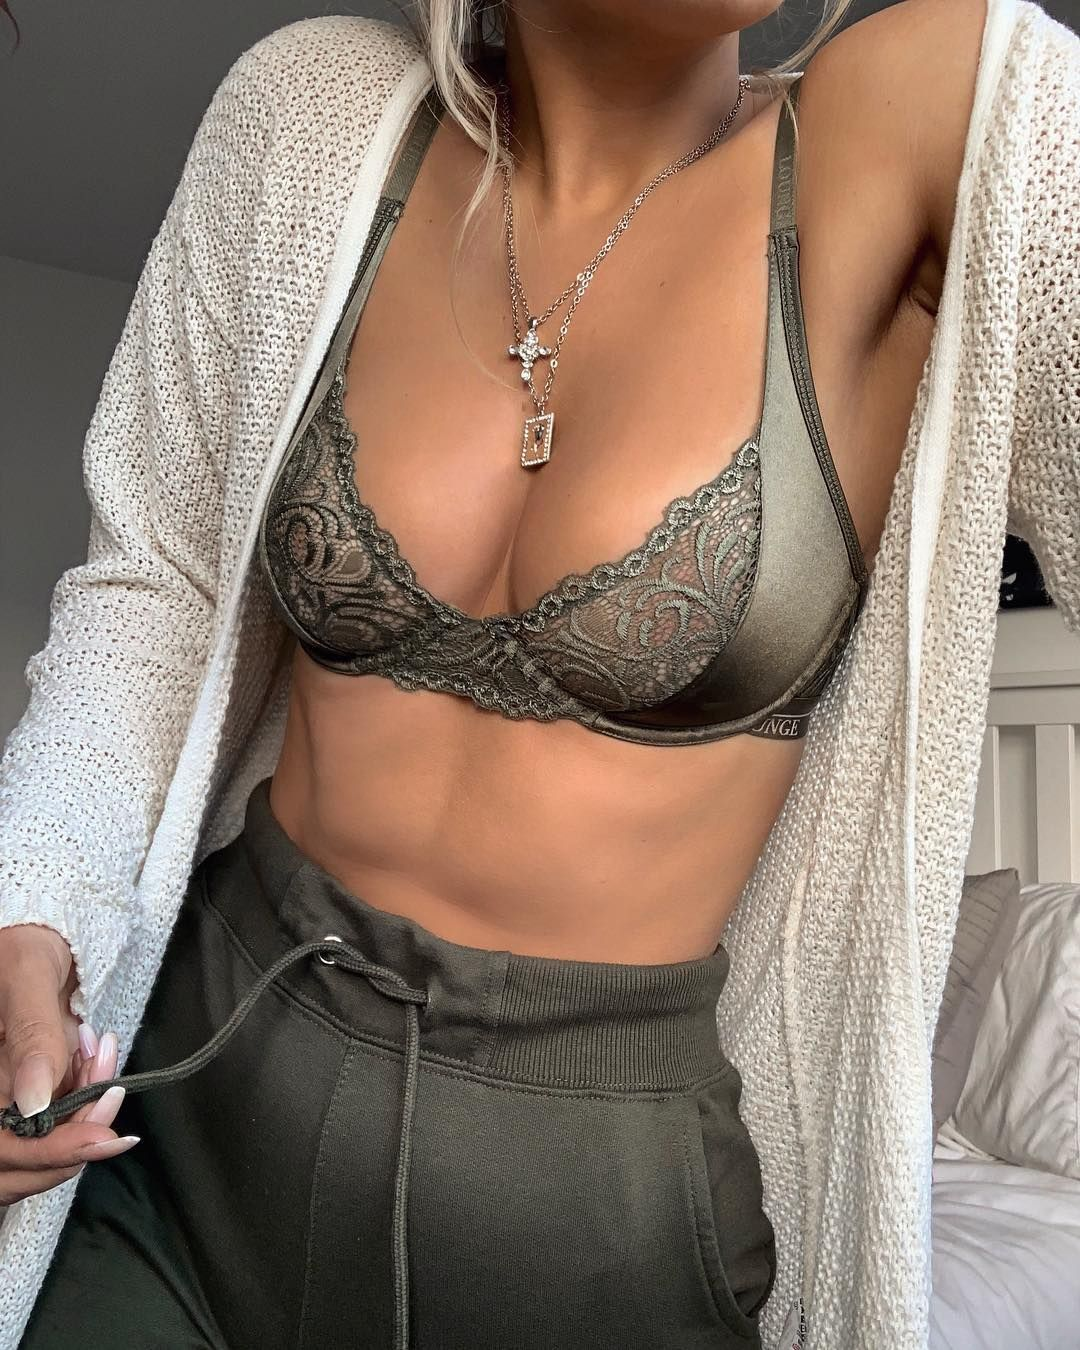 K A Y L E I G H on Instagram Honestly my favourite bra of all time from loungeunderwear   K A Y L E I G H on Instagram Honestly my favourite bra of all time from loungeun...